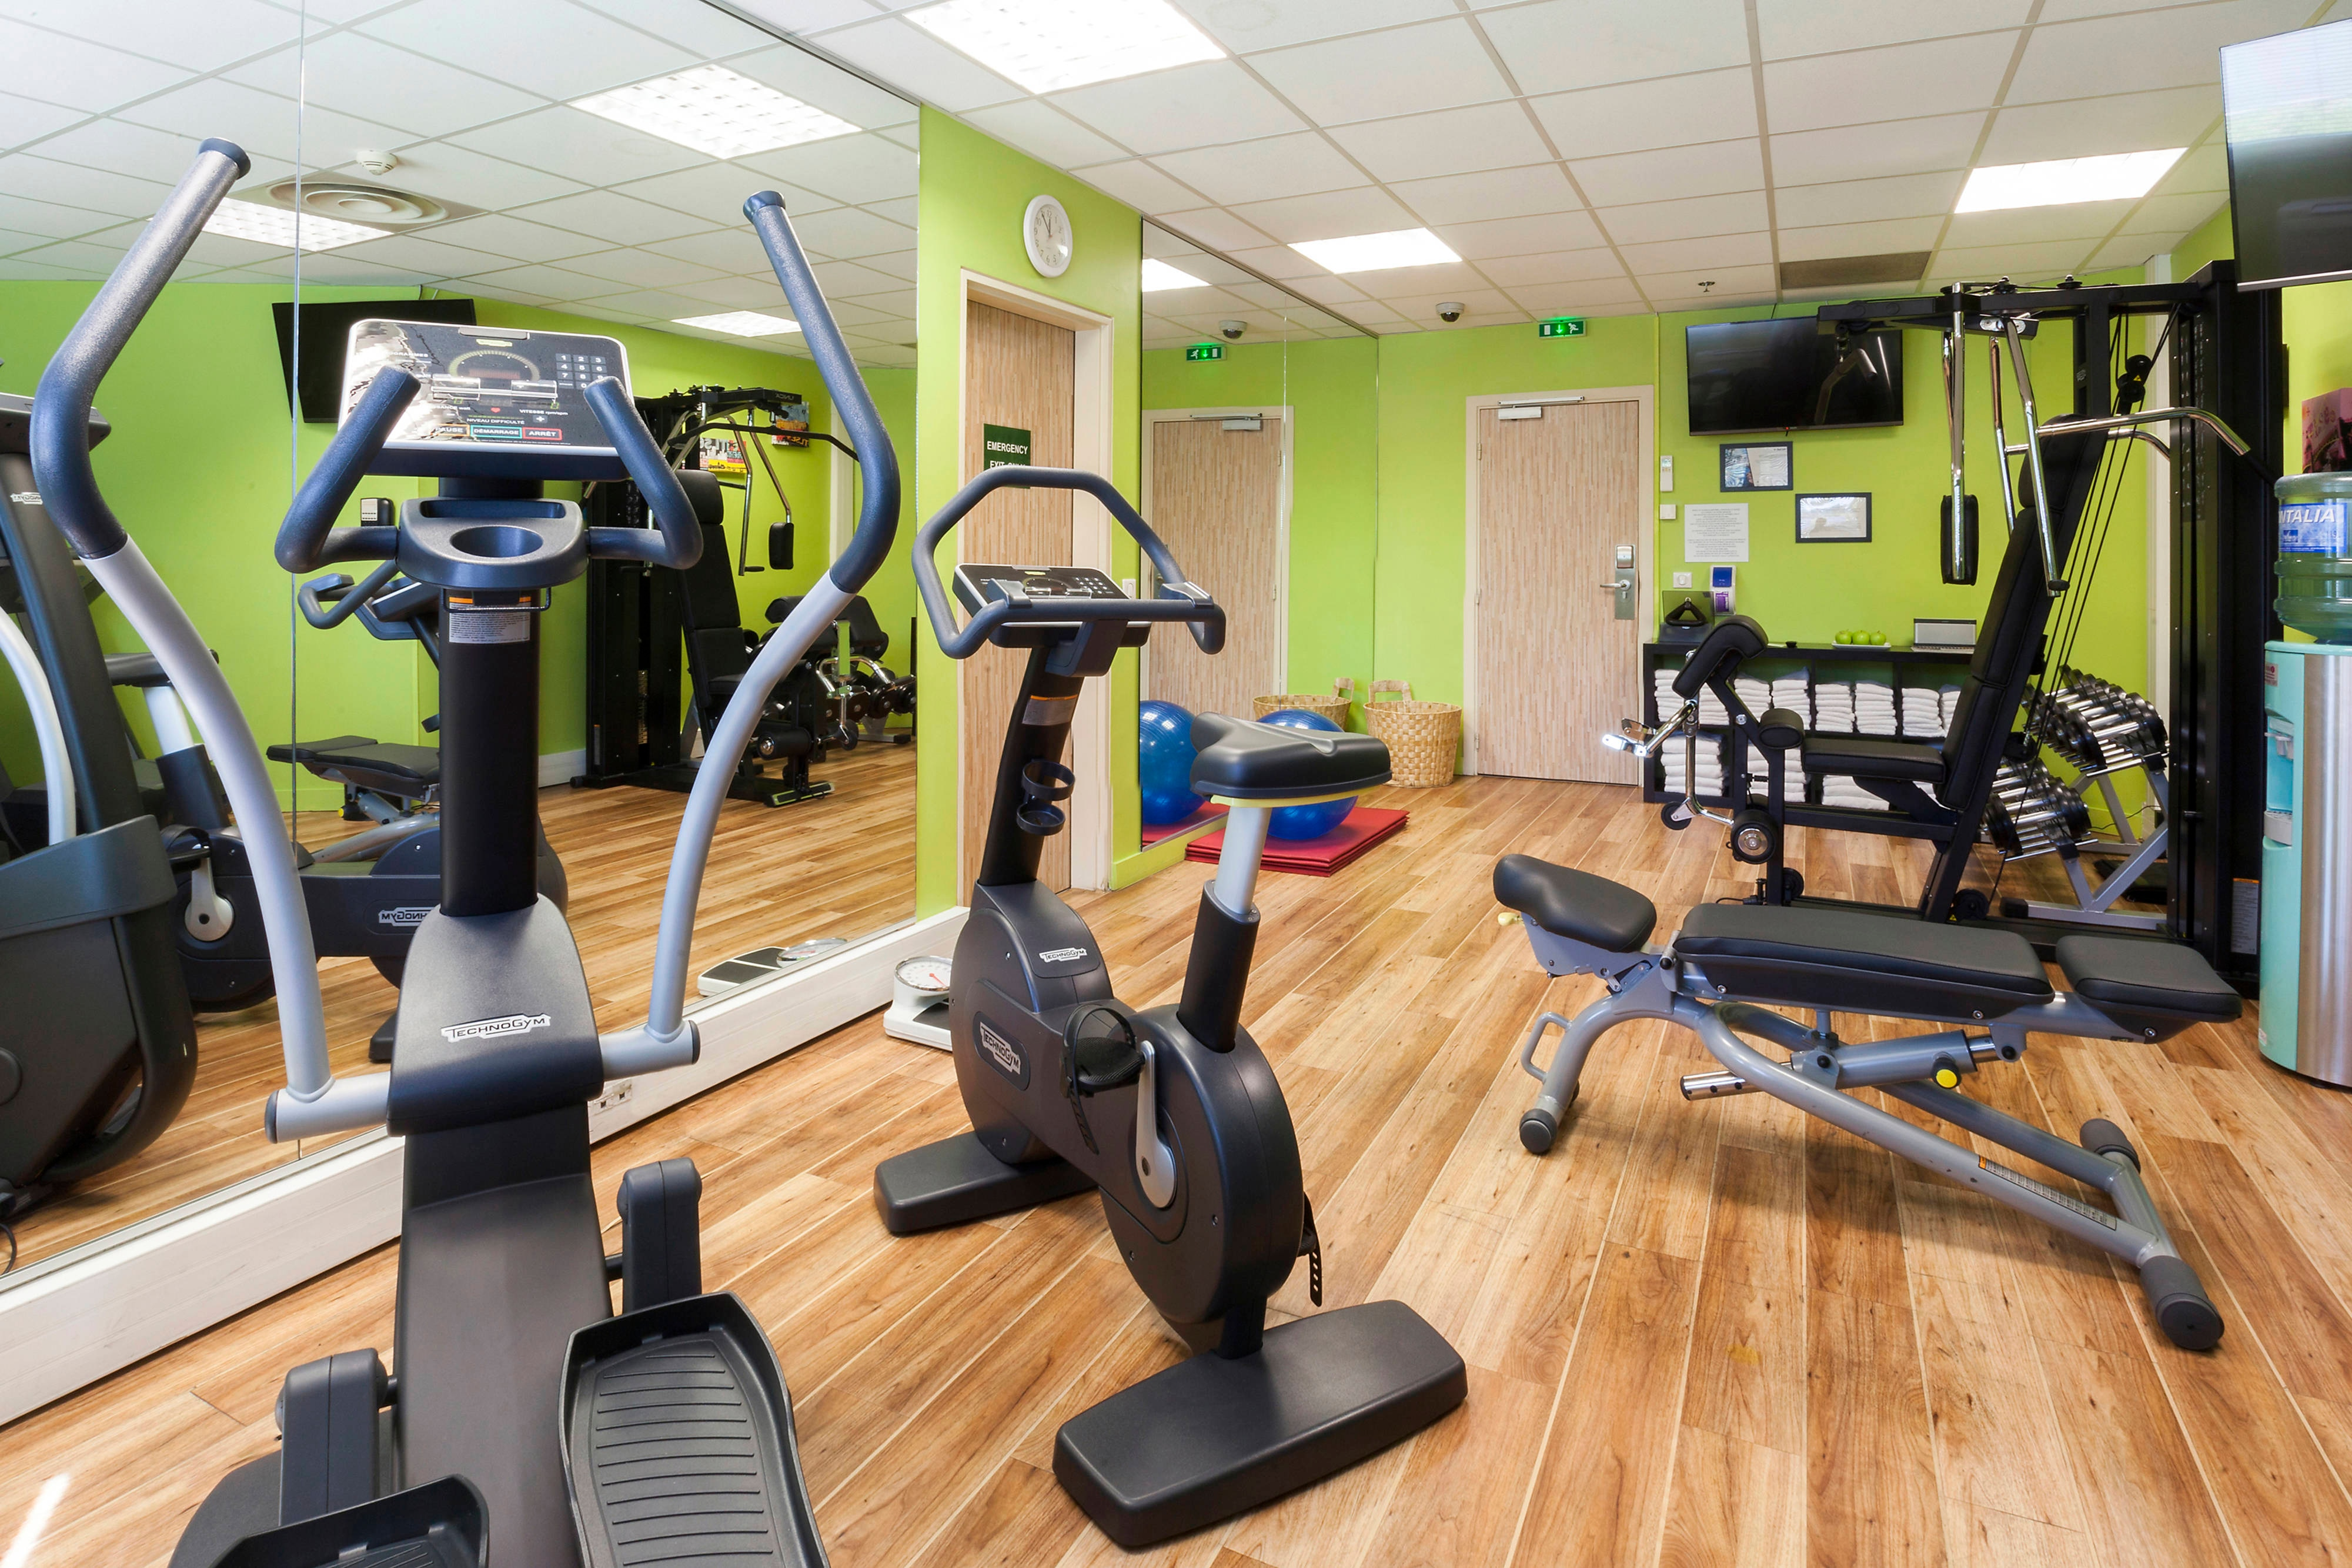 Fitness Center at Toulouse hotel